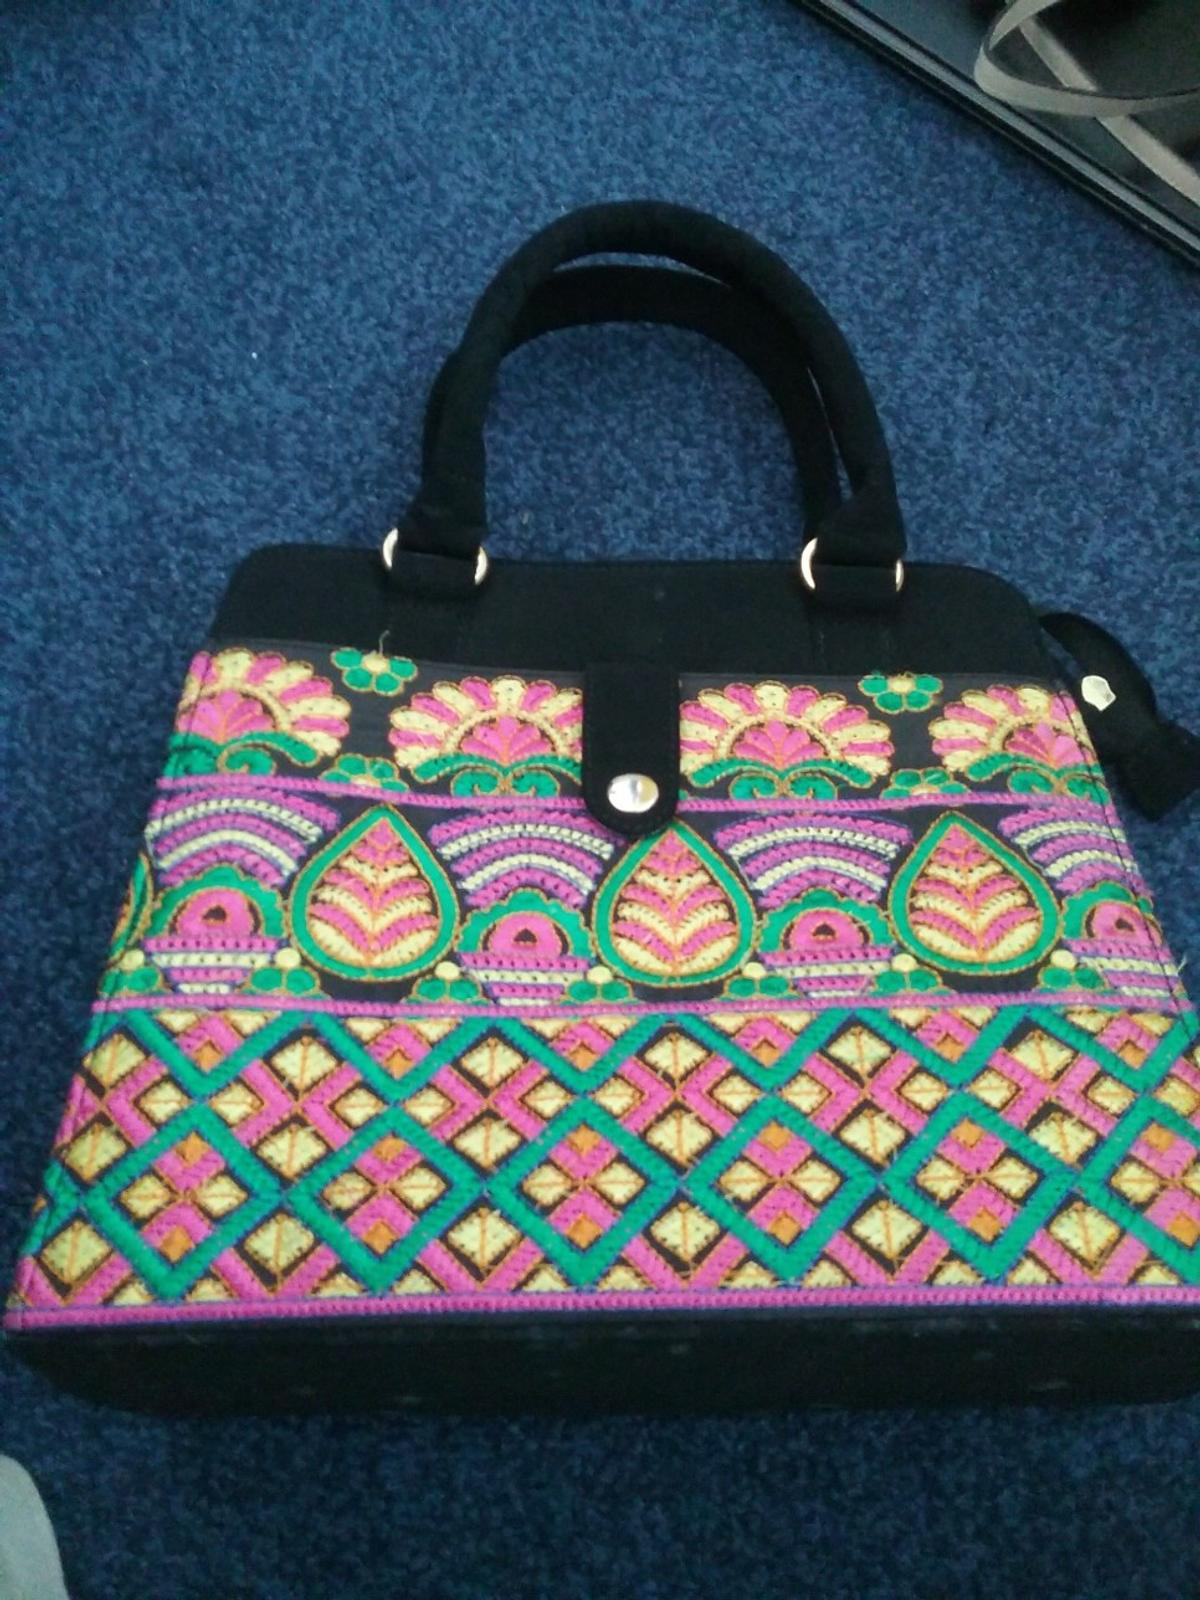 Used once  black velvet with multicolored embroidery  ideas by gul ahmed  gorgeous handbag